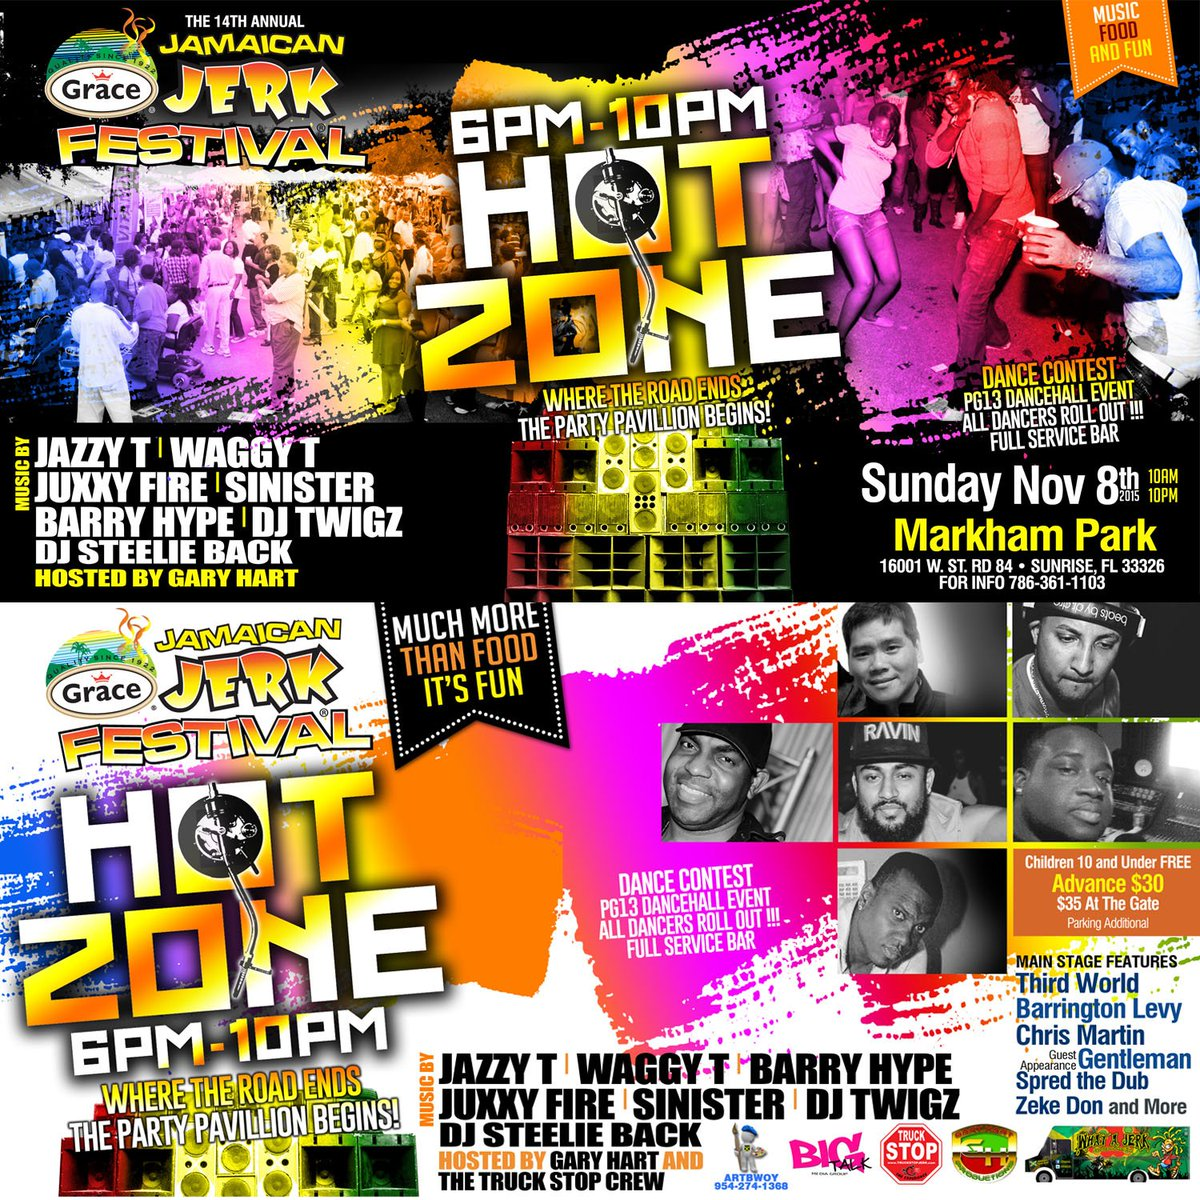 Where the road ends, the Party Pavillion begins! Dancehall comes alive in the Hot Zone at this year's #JerkFestival https://t.co/E3aGRawnnG